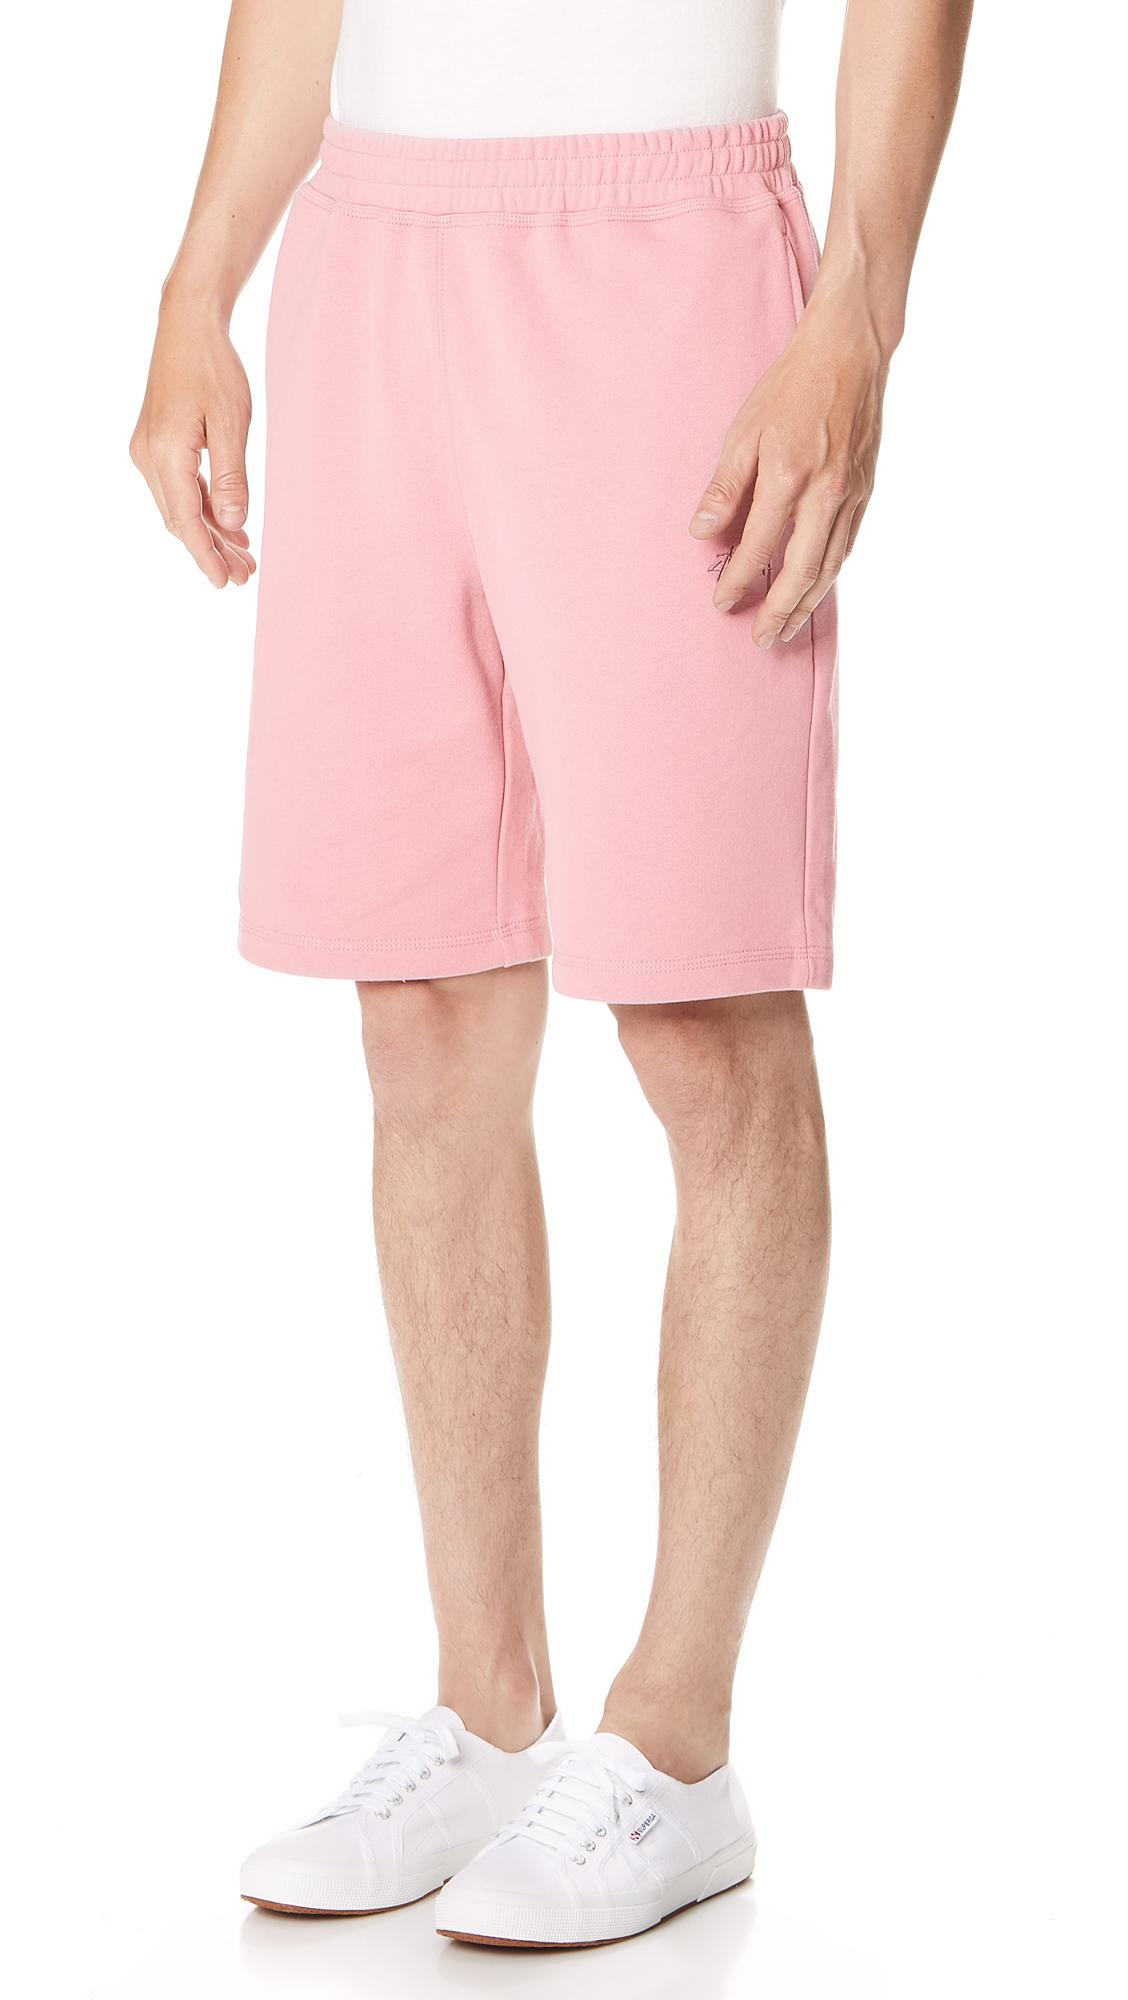 e316e46059 Lyst - Stussy Stock Sweat Shorts in Pink for Men